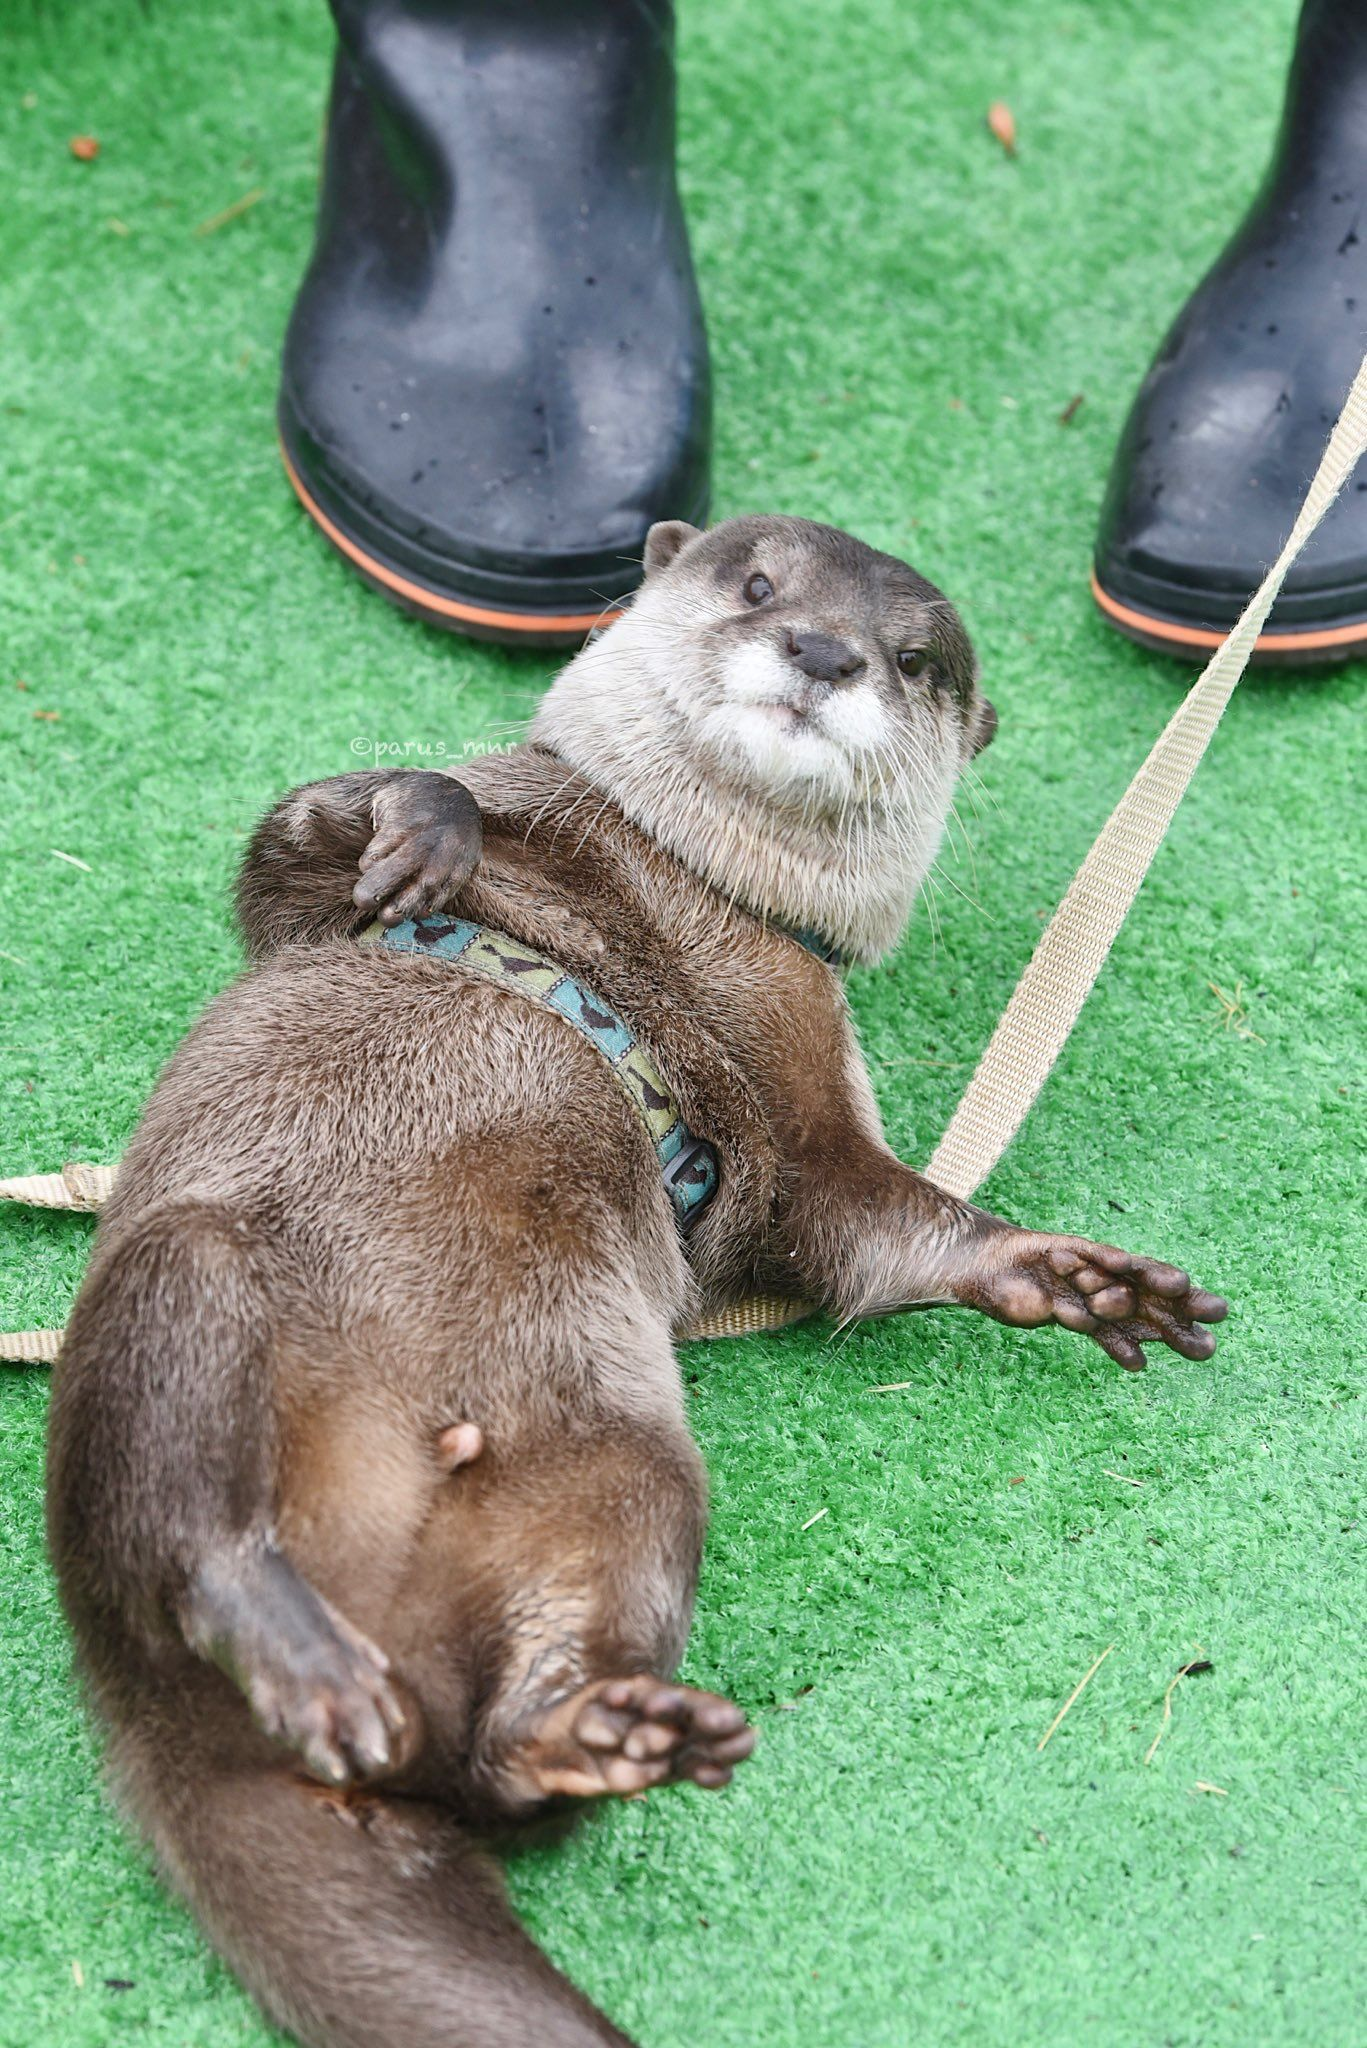 Pin by Jacqueline Robinson on Cute Cute animals, Otters